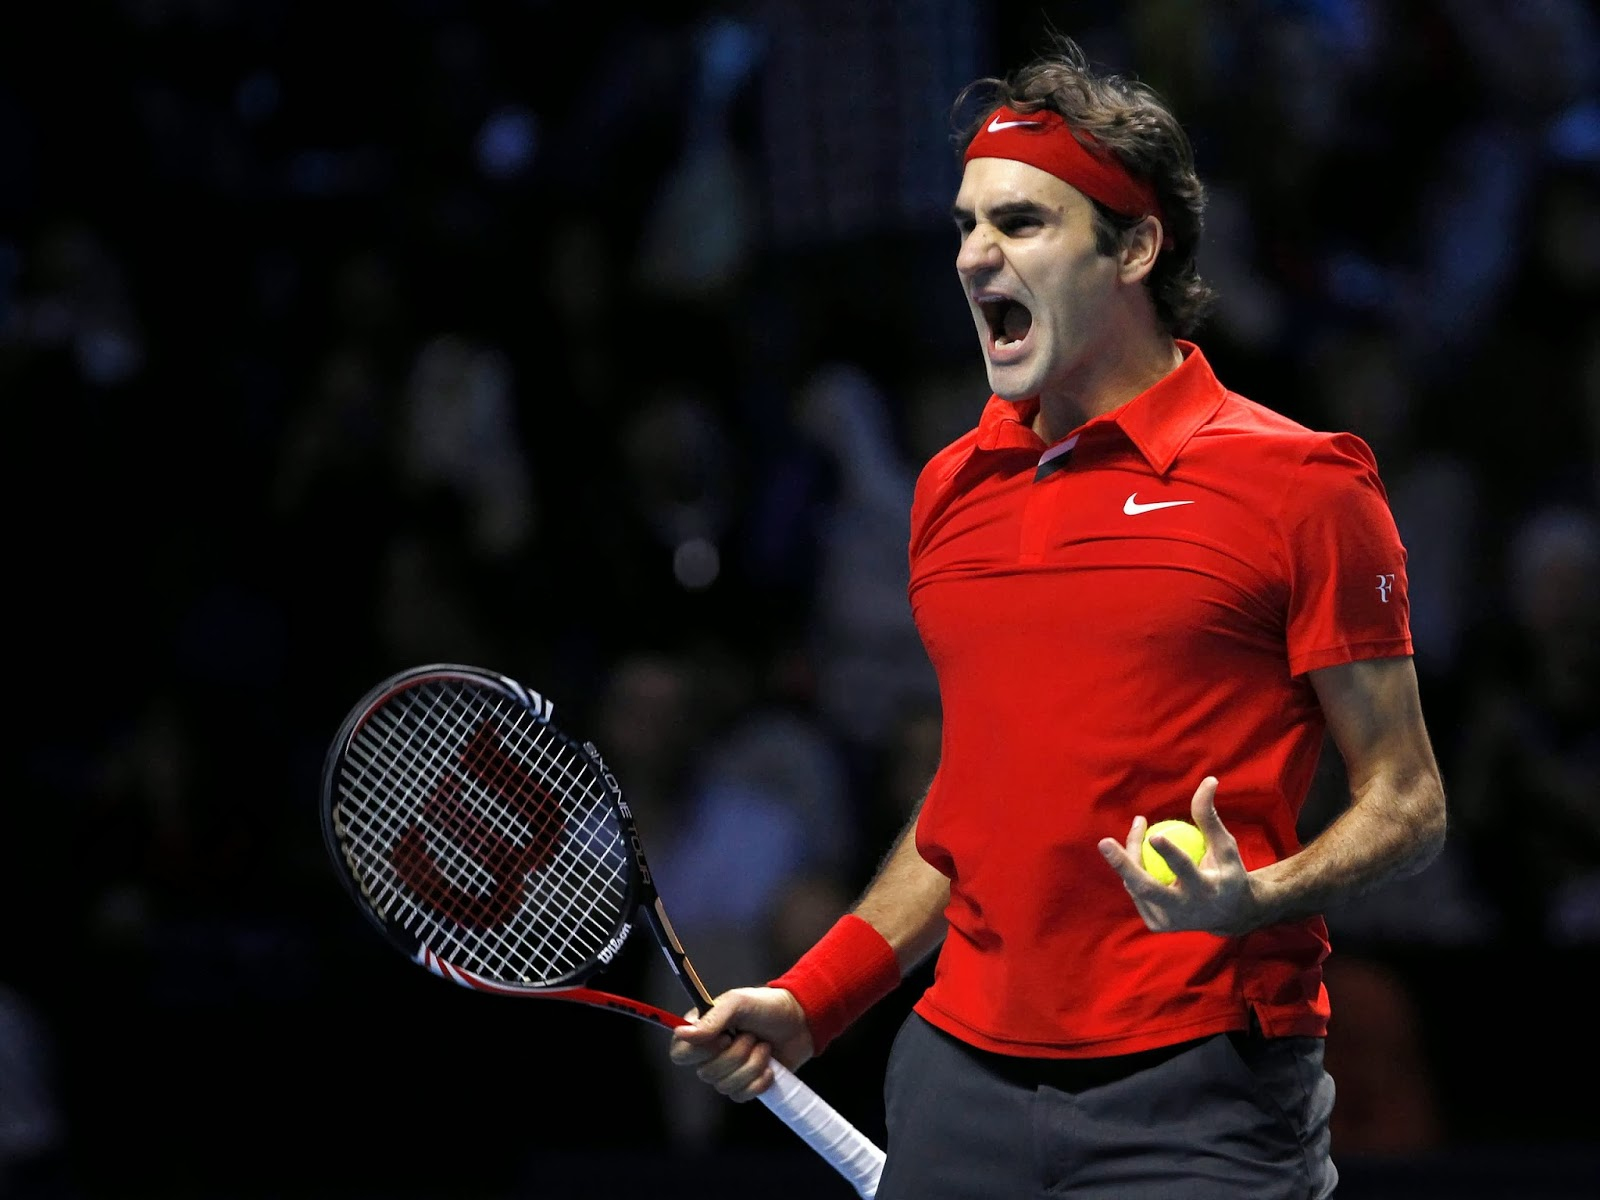 Roger Federer Pinterest: World Sport Star : Roger Federer Tennis Player